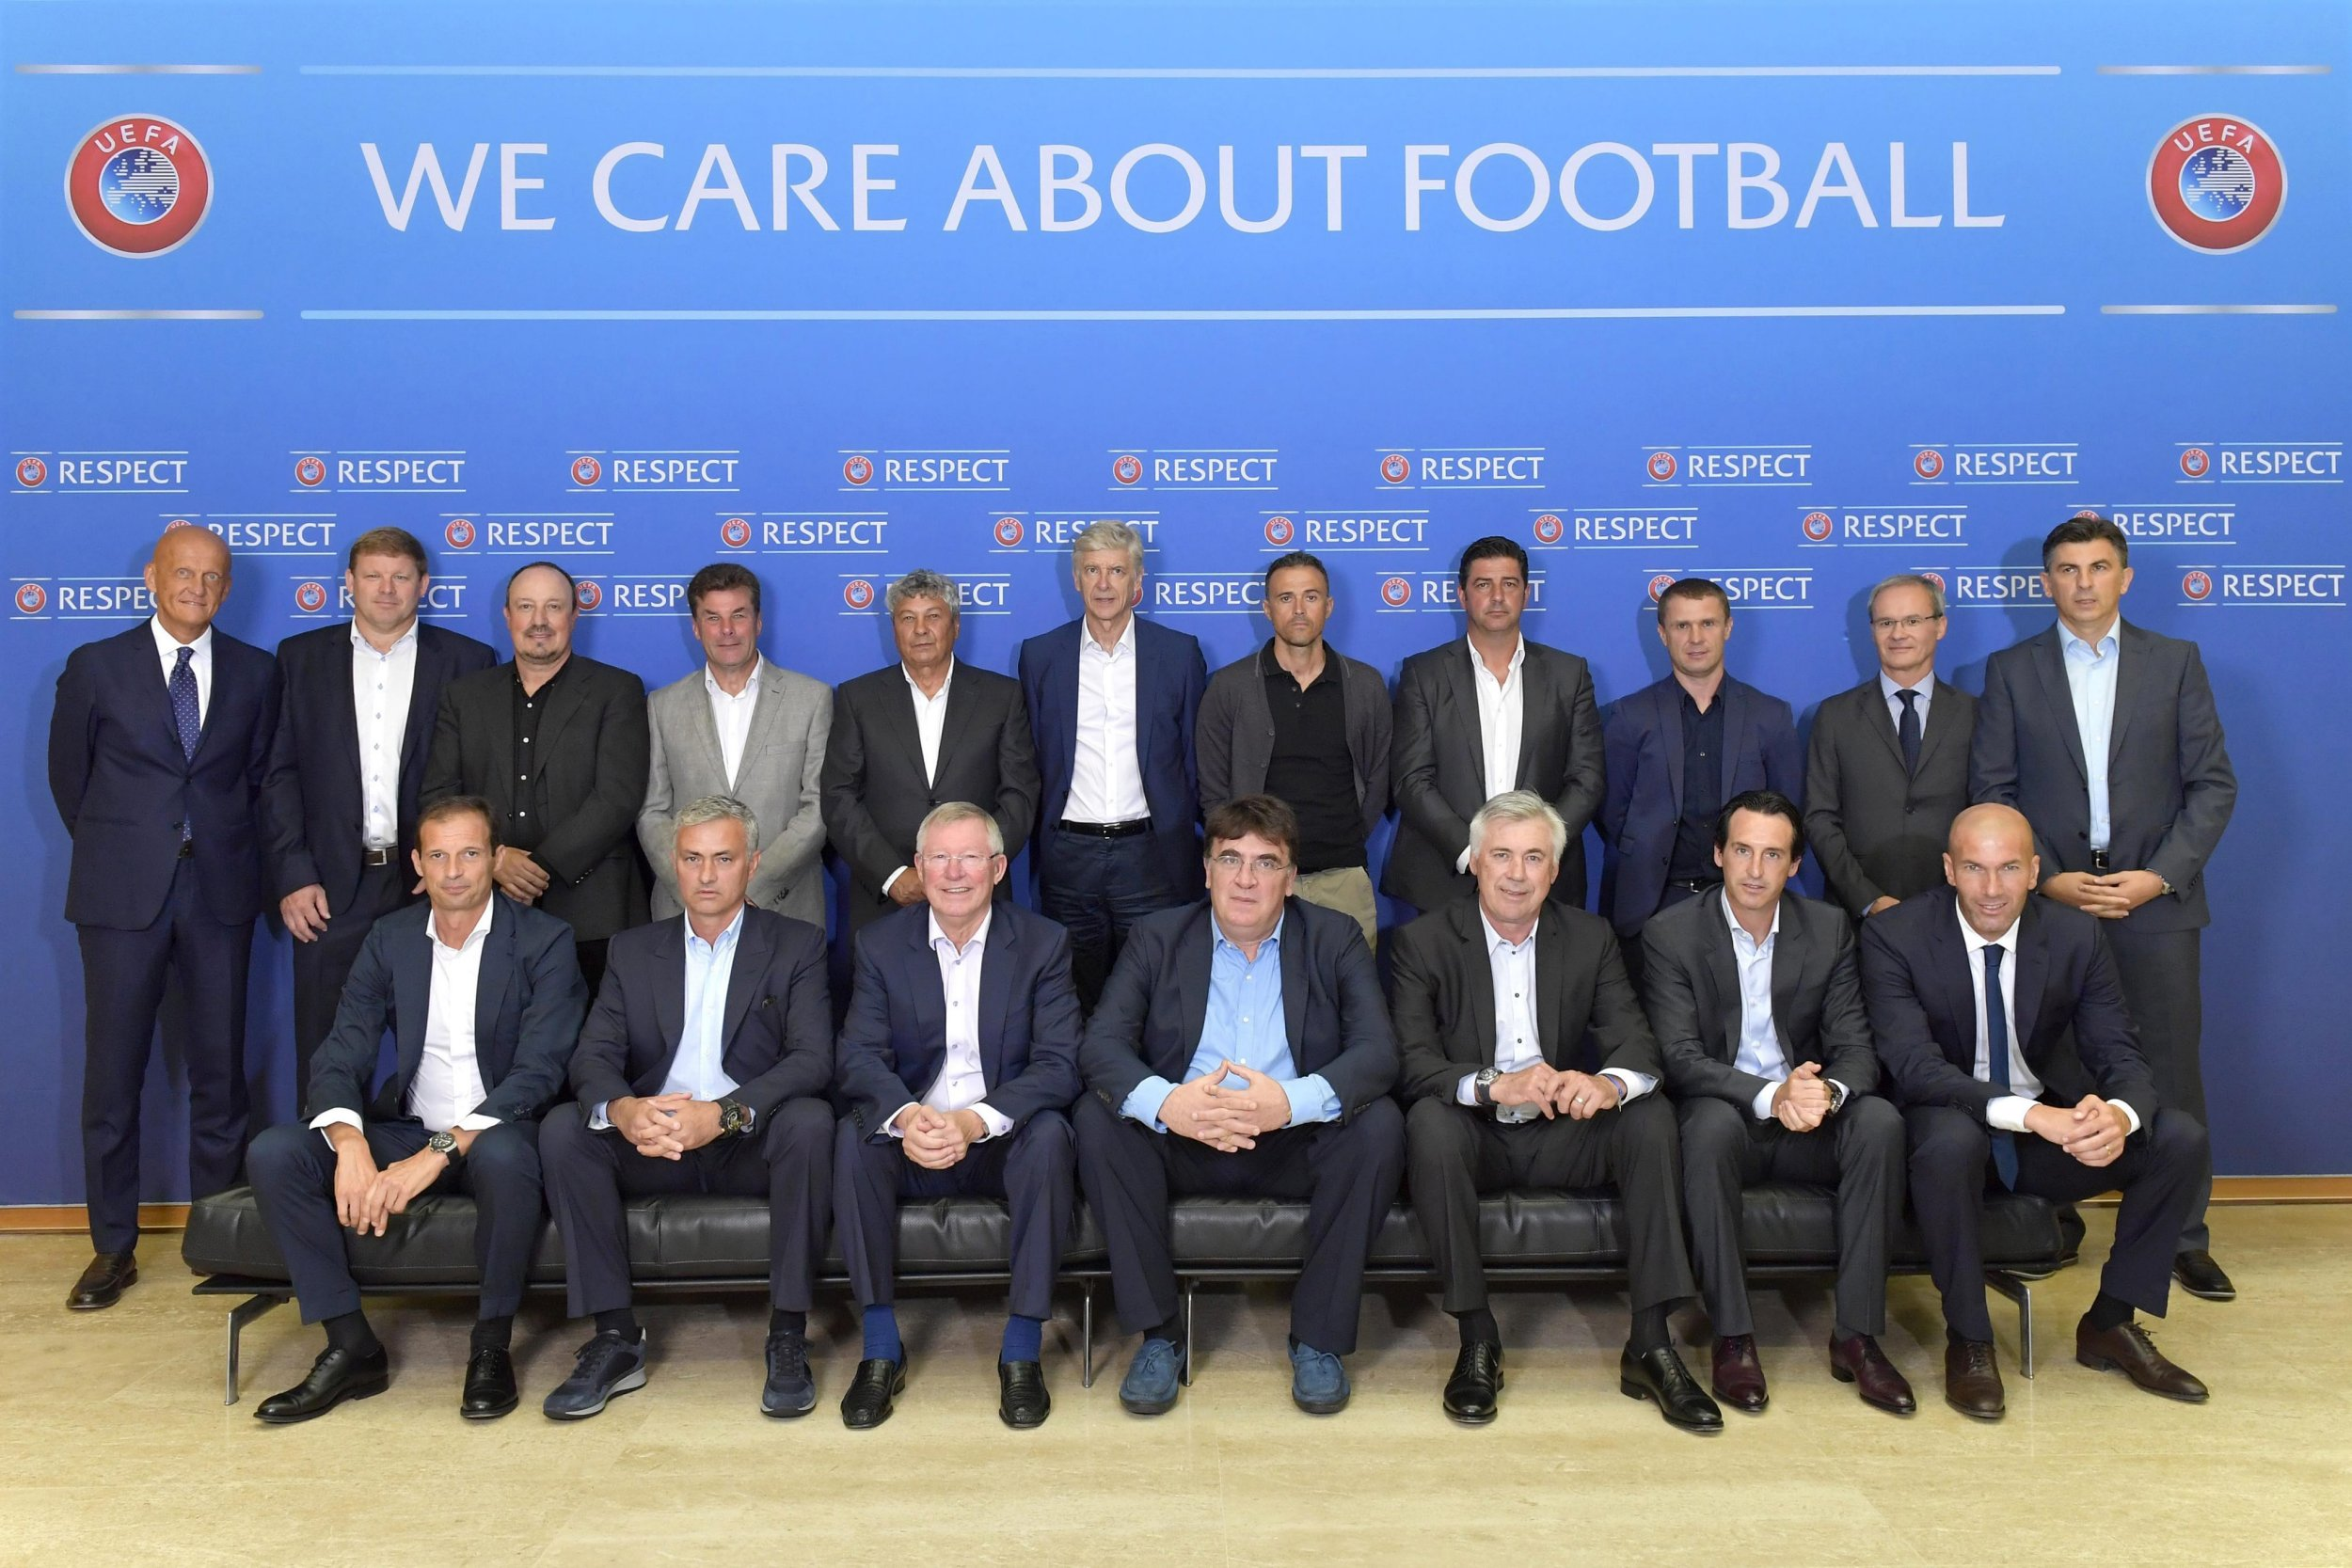 epa05517077 A handout picture provided by UEFA shows a group picture of the participants of the 18th UEFA Elite Club Coaches Forum at the UEFA headquarters, in Nyon, Switzerland, 31 August 2016.  EPA/UEFA VIA GETTY IMAGES/HAROLD CUNNINGHAM **MANDATORY CREDIT** HANDOUT EDITORIAL USE ONLY/NO SALES